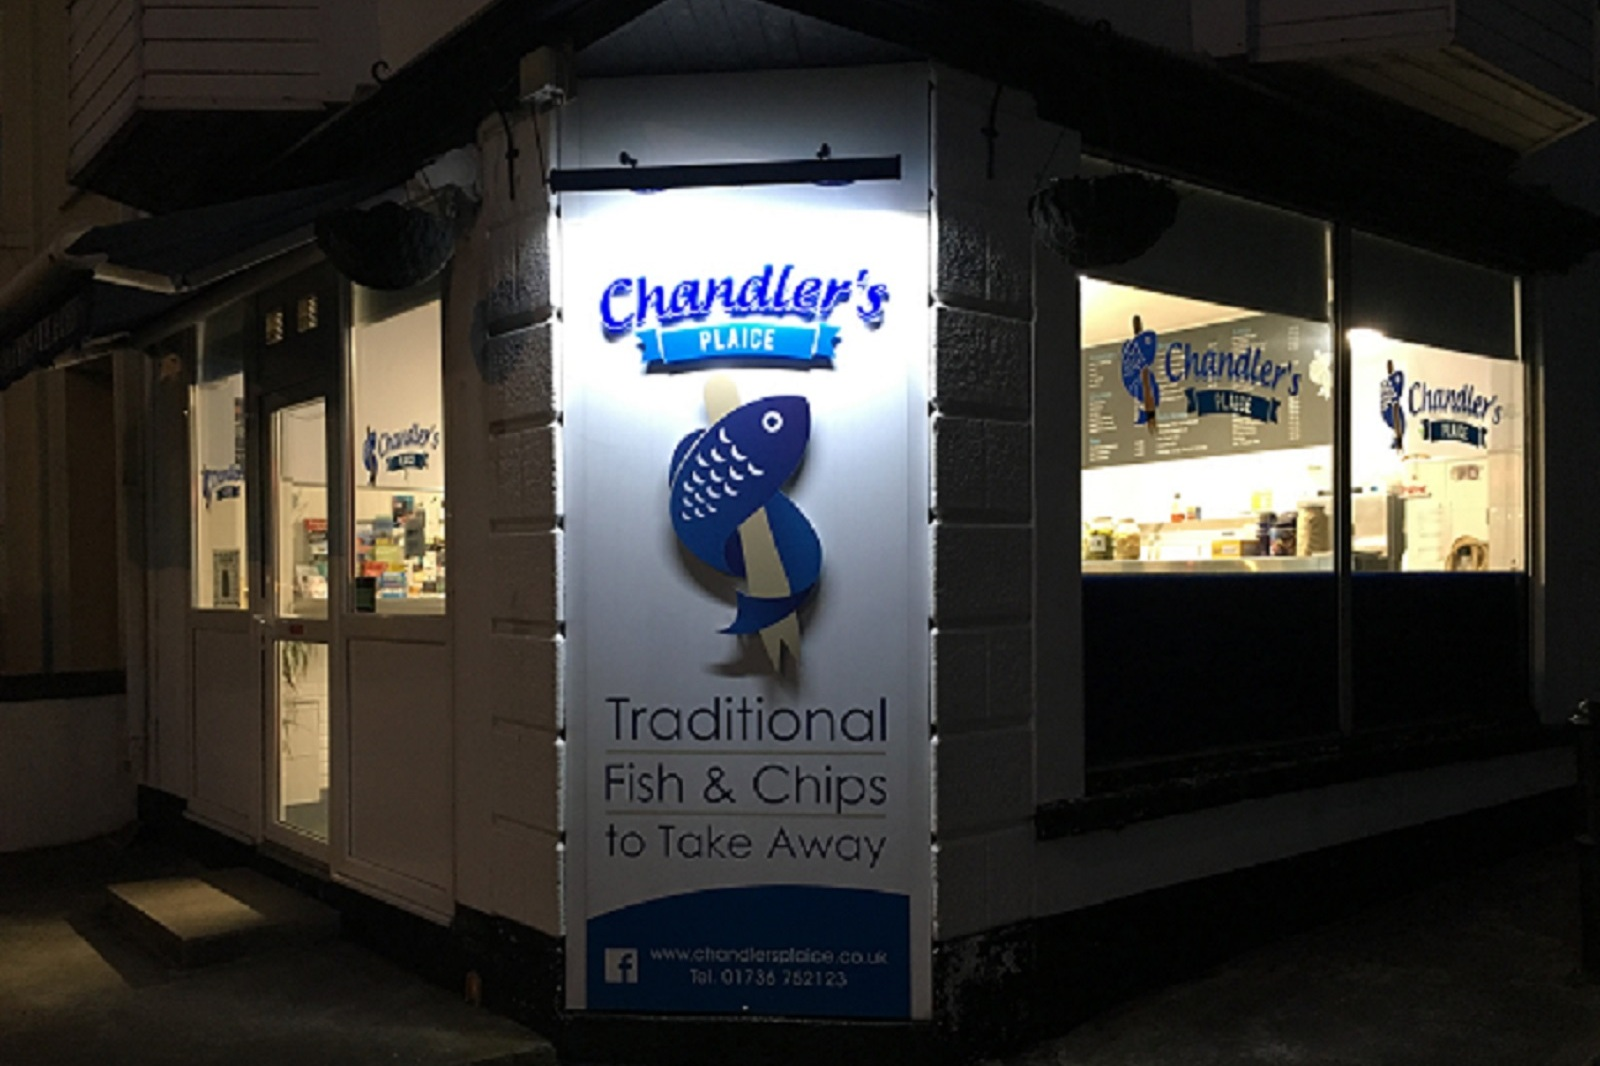 CHANDLERS PLAICE - Chandlers Plaice is a quality family run fish and chippy serving freshly cooked traditional fish & chips; Cod, Haddock, Plaice and Scampi. Also serving Pies, Chicken and Burgers. As an alternative to crispy battered fish, why not try their famous steamed cod with a wedge of lemon?01736 752123